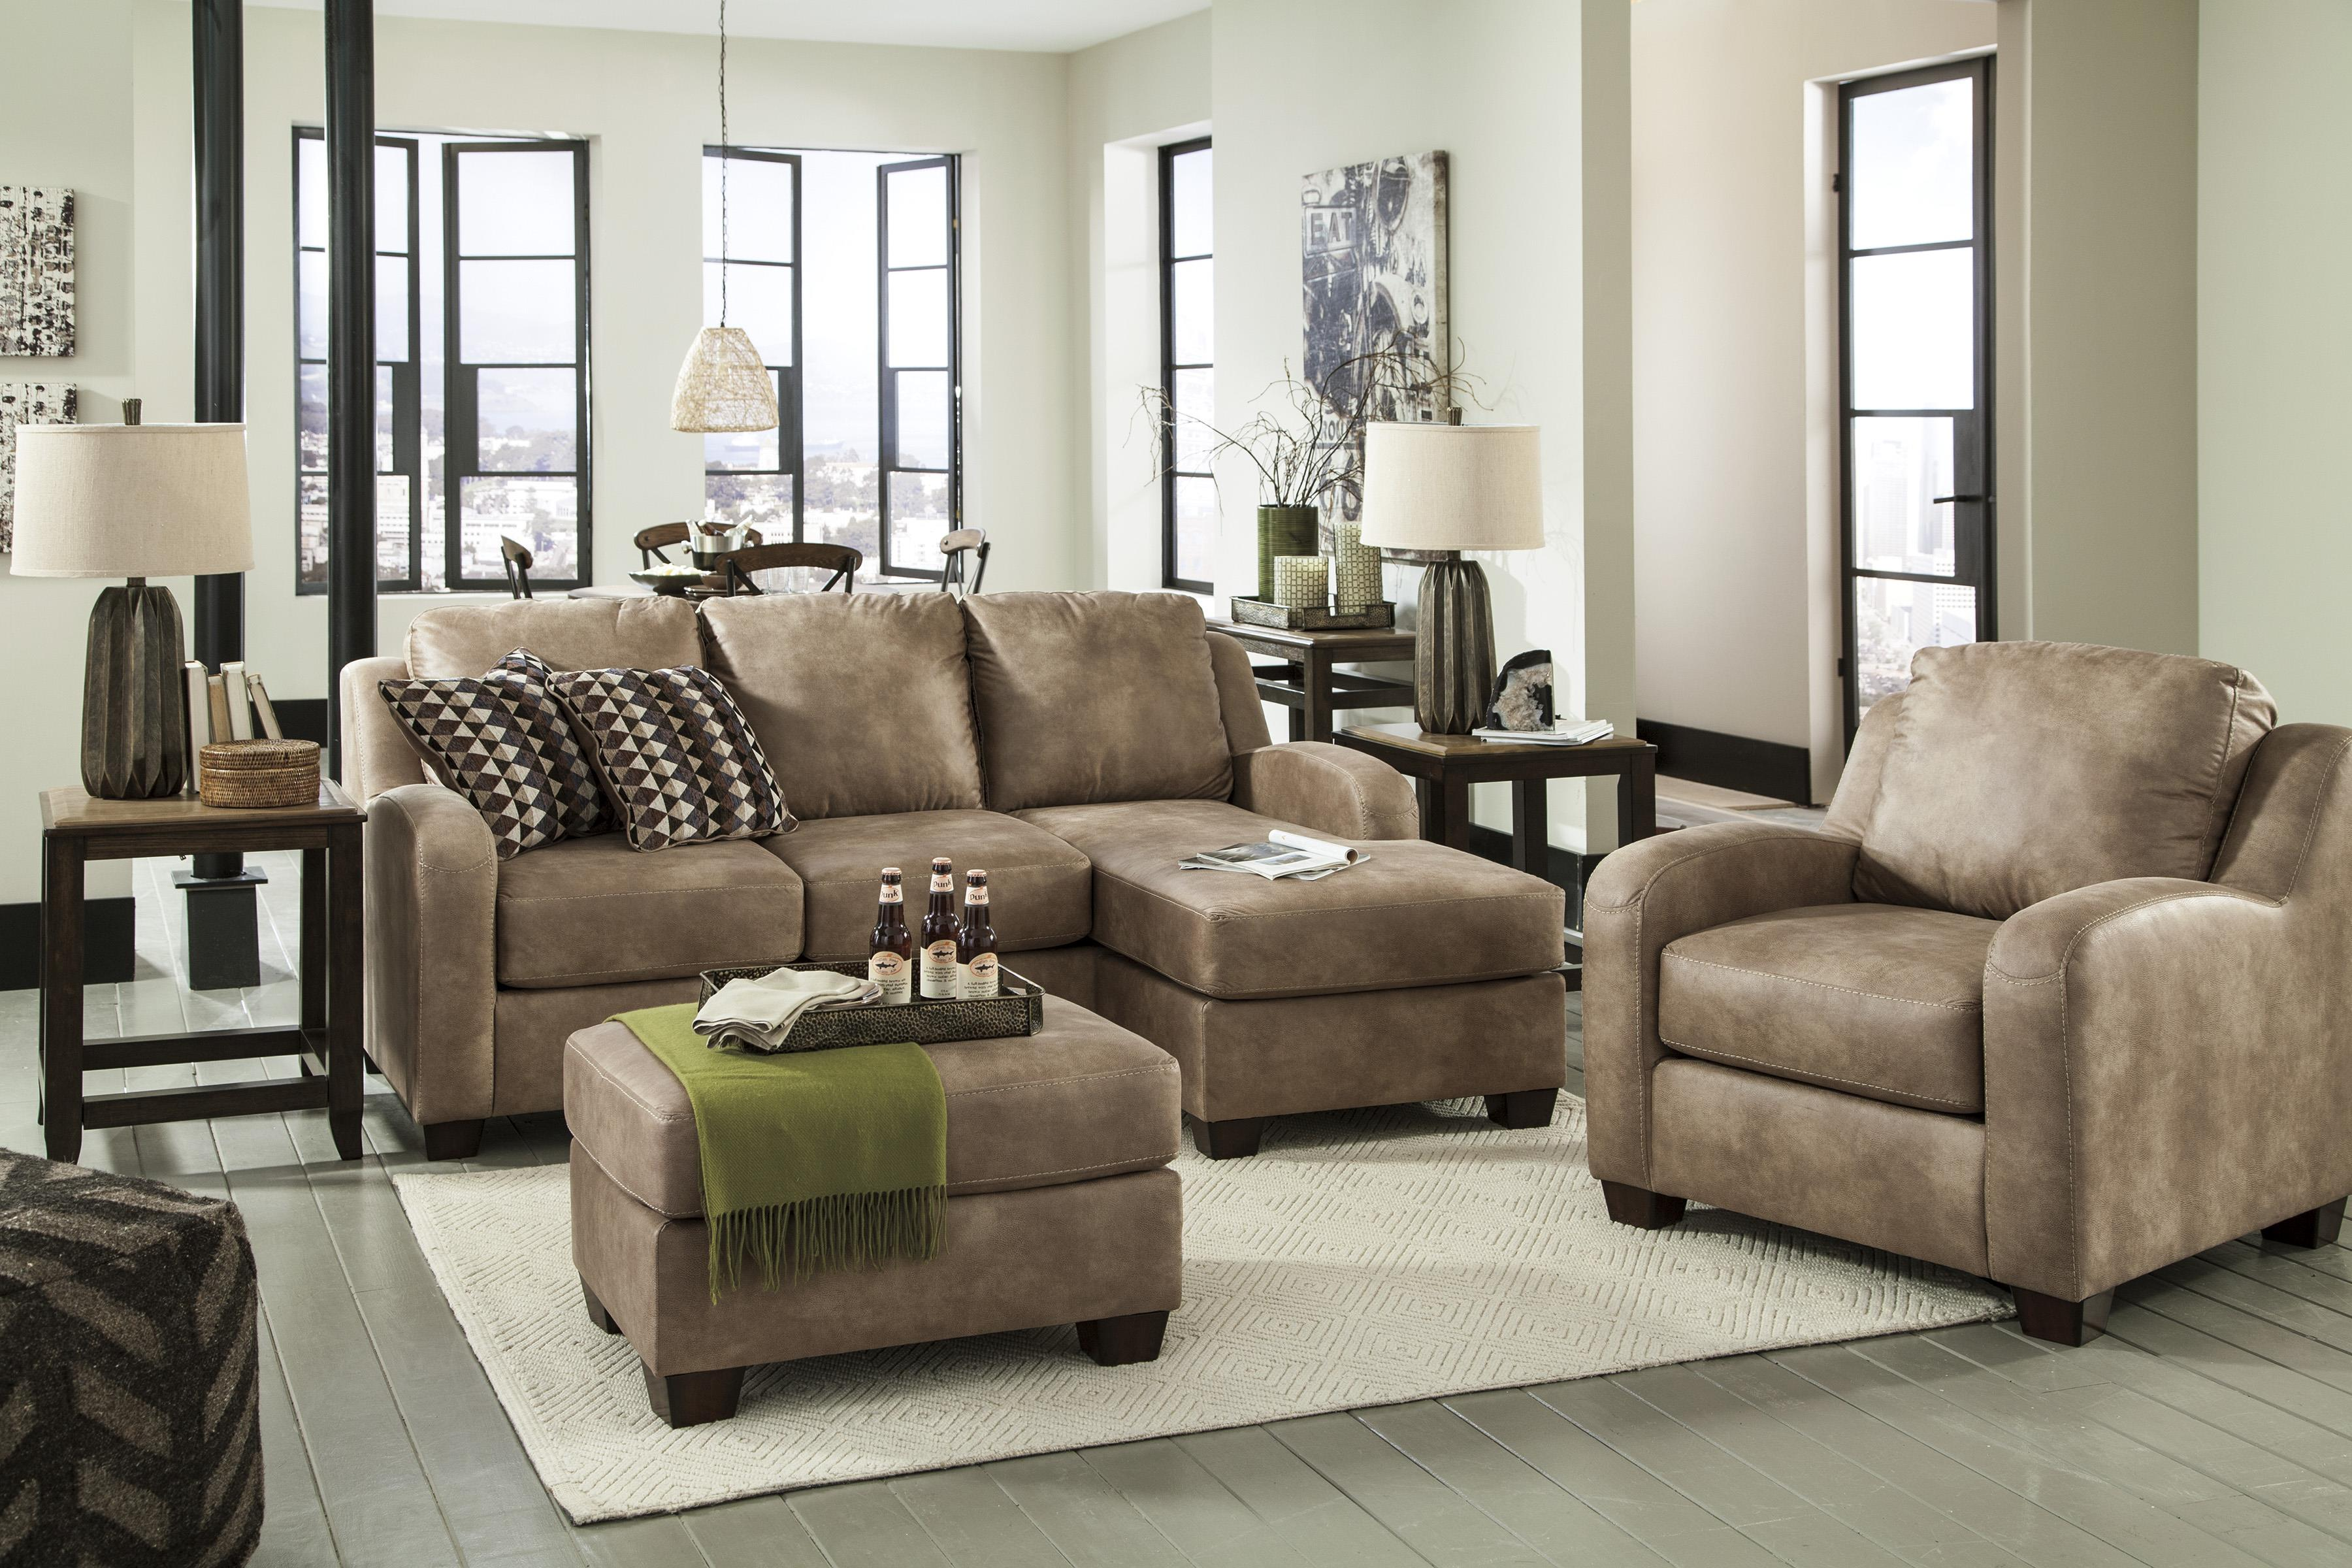 Benchcraft alturo queen sofa chaise sleeper with memory - Apartment sofa with chaise ...